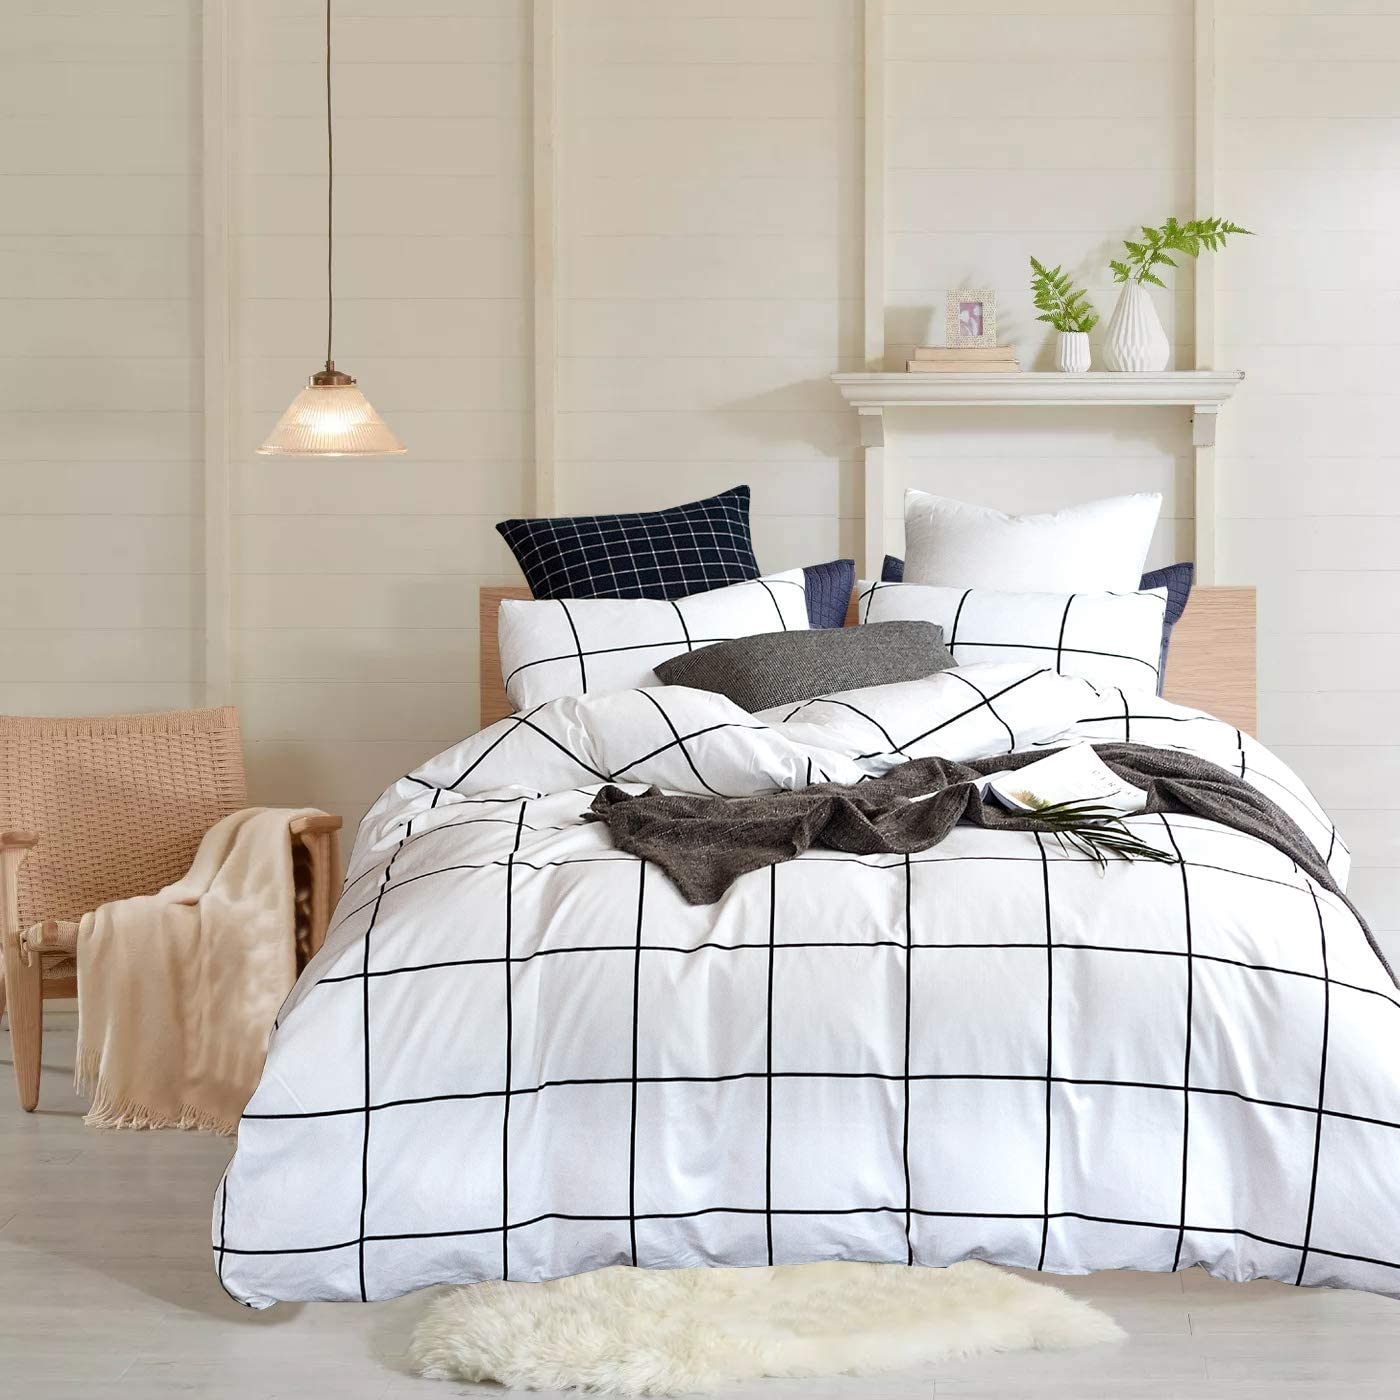 Wellboo White Grid Duvet Cover Cotton Plaid Checkered Bedding Cover Sets  Queen Full Adult Women Men Quilt Covers Large Plaid Black and White Duvet  ...